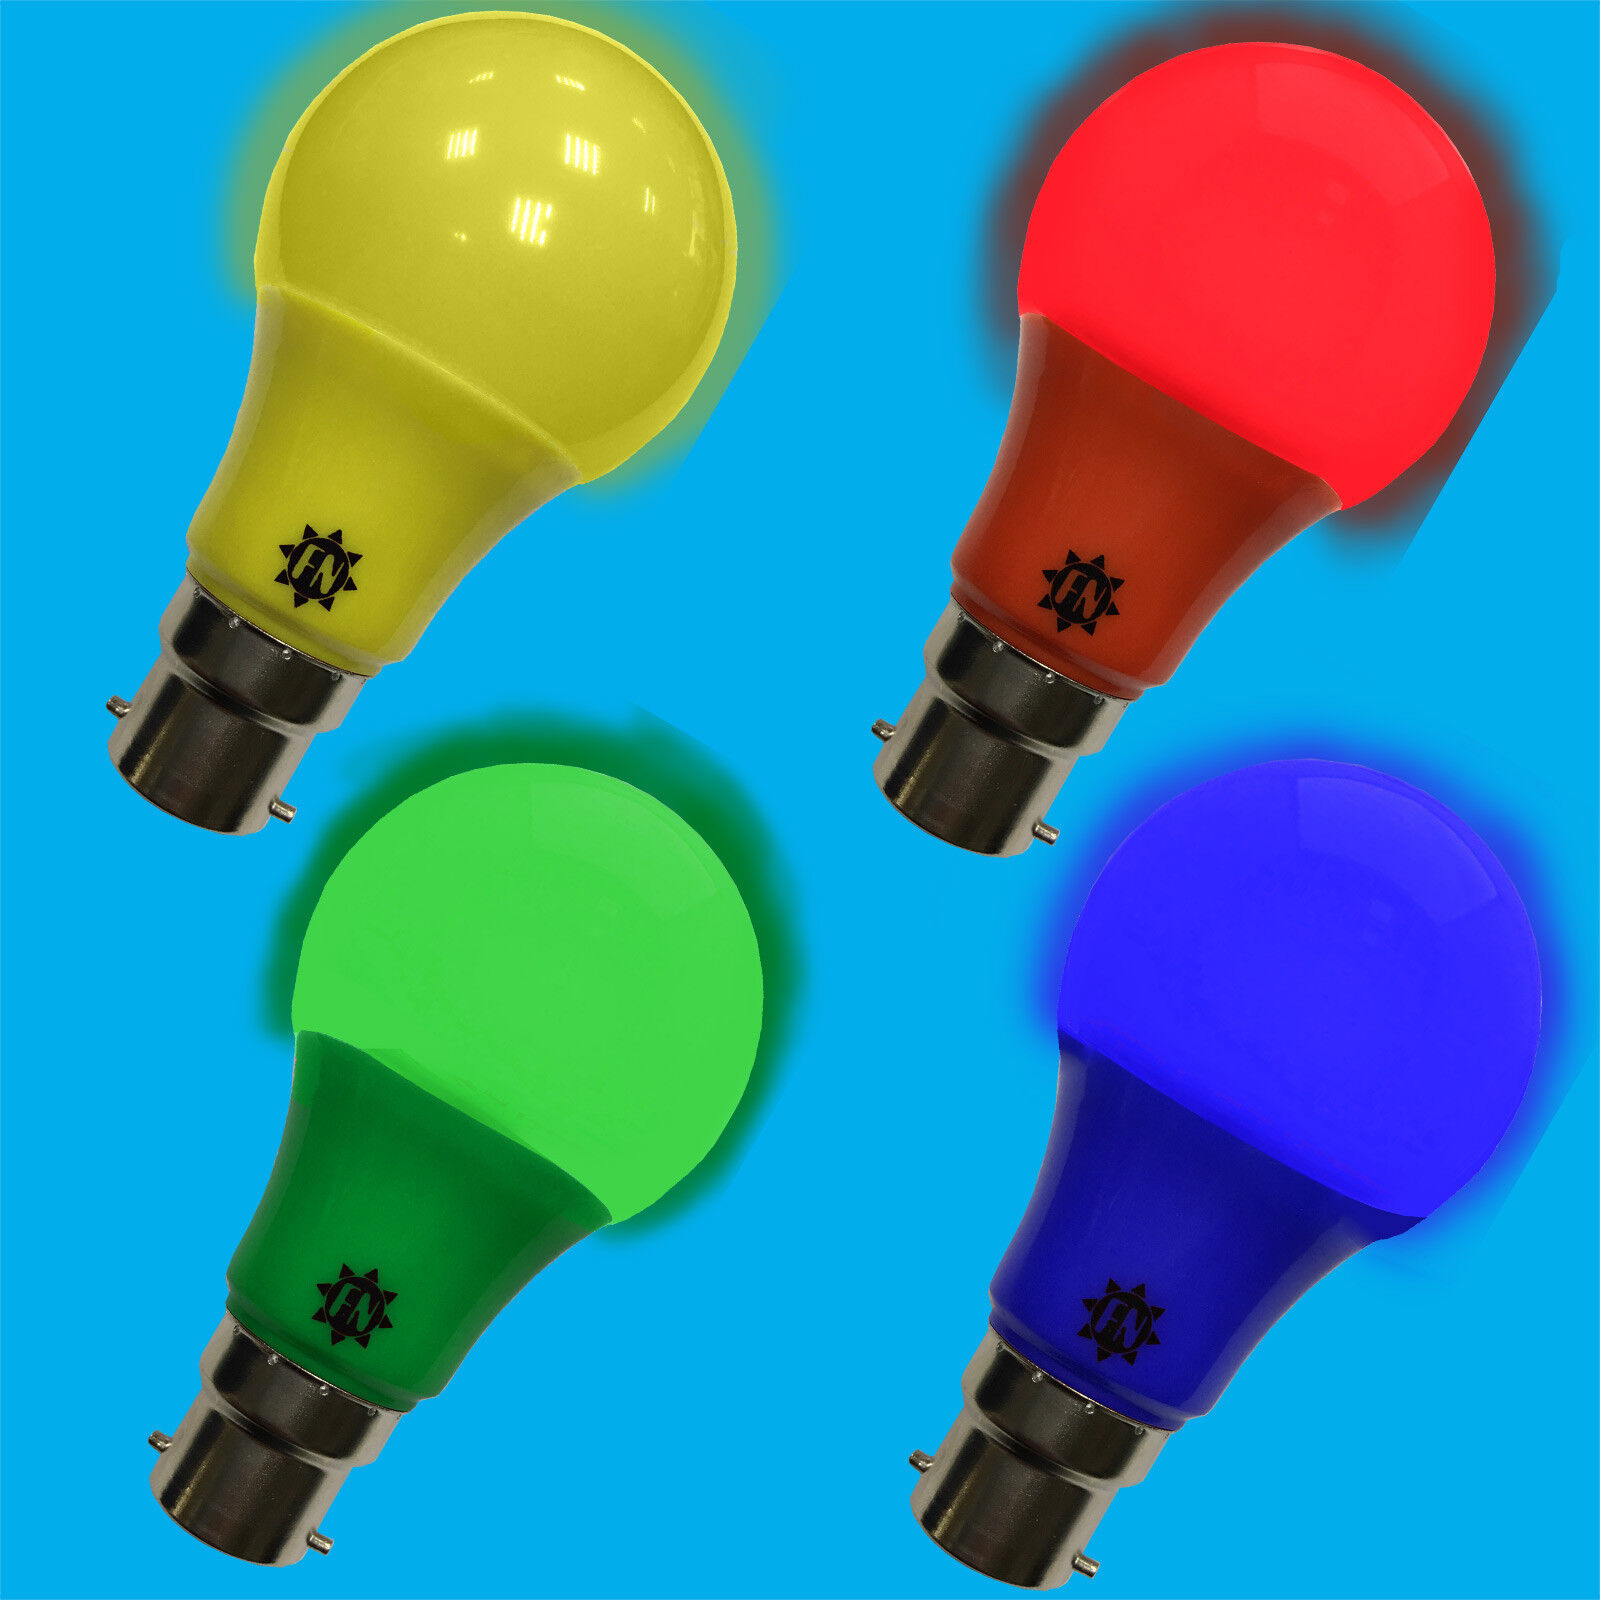 6x 6w LED Coloured Lamp GLS B22 Light Bulb Choose Between Red Yellow Green bluee